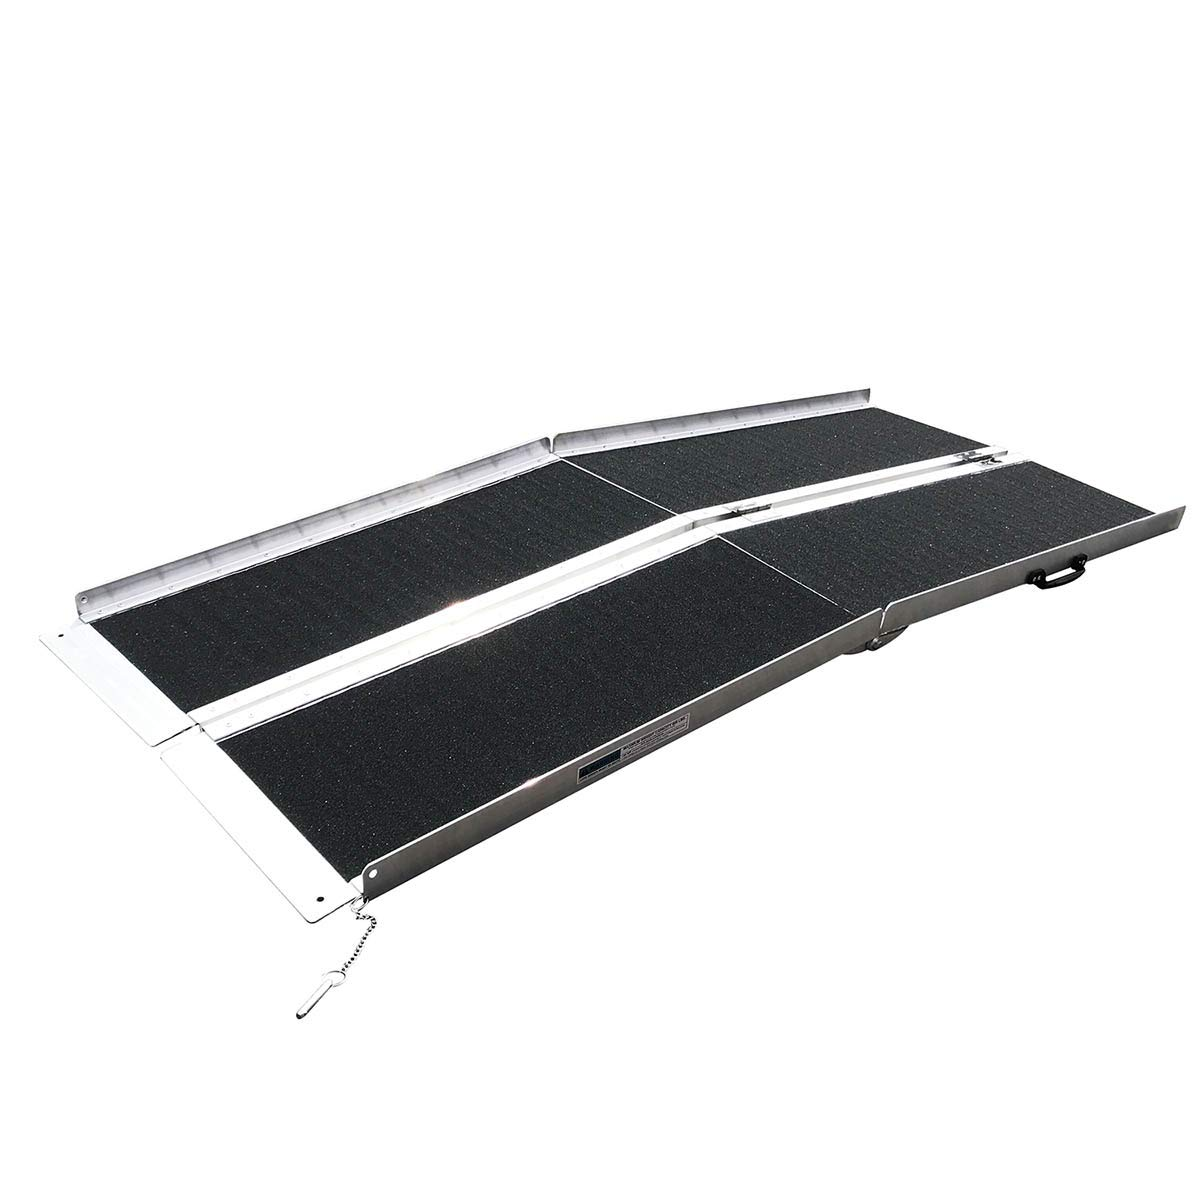 Clevr 6' (72'' X 31'') Non-Skid Aluminum Wheelchair Loading Traction Ramp, Lightweight Folding Portable, Single Fold Wheelchair Scooter Ramp, Extra Wide 31'', Holds up to 600 lbs by Clevr (Image #5)